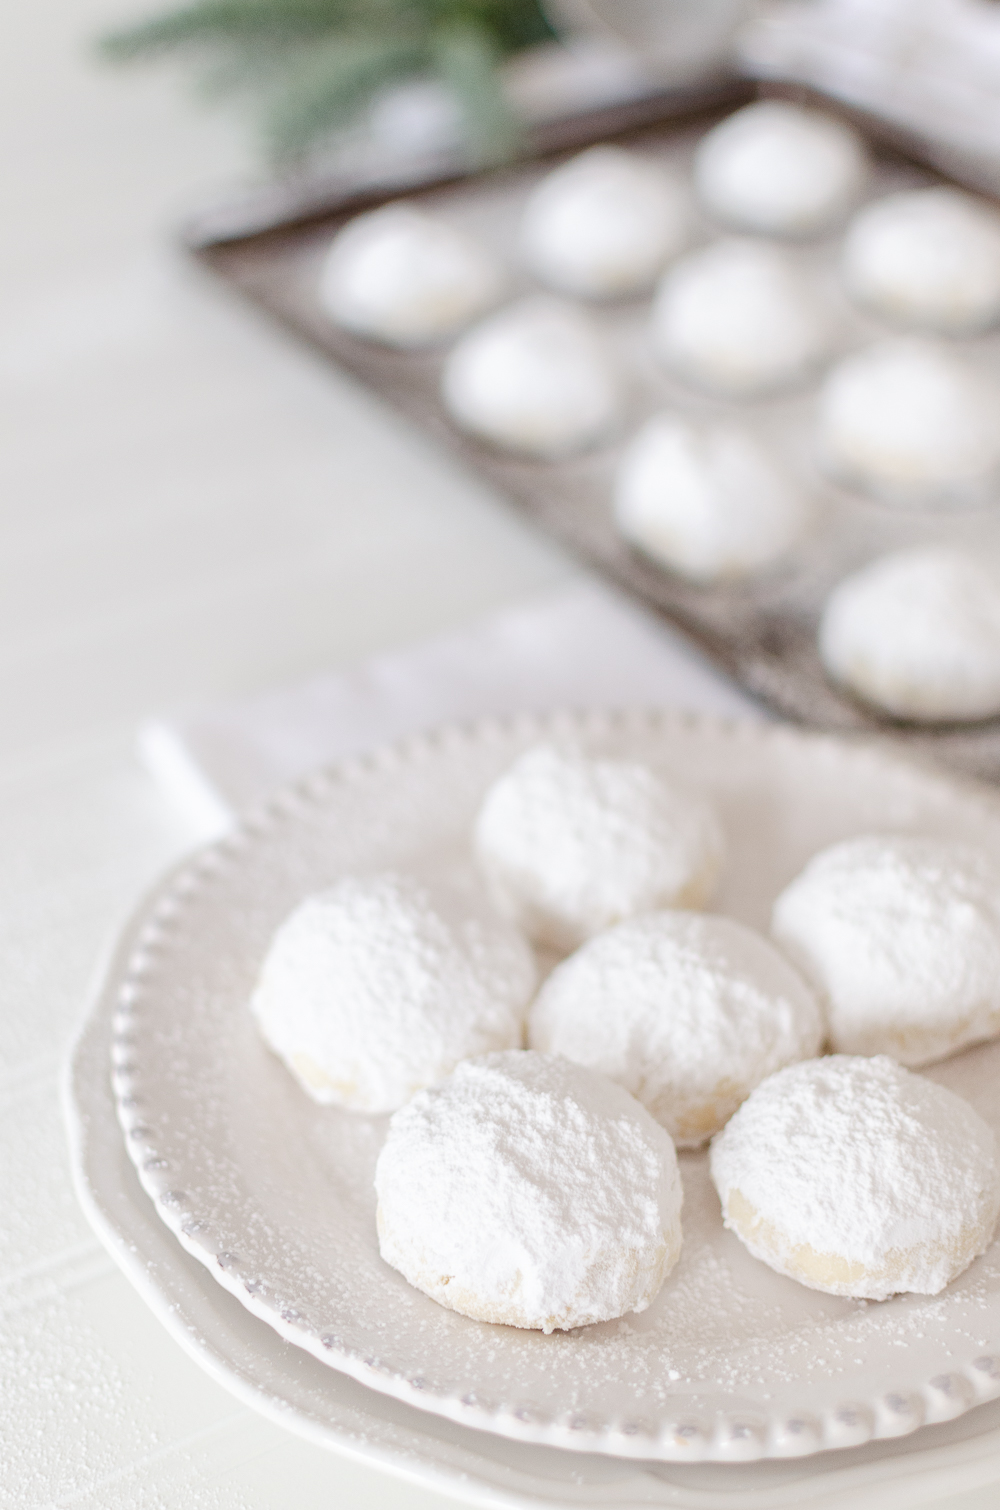 These melt-in-your-mouth shortbread cookiessprinkled in icing sugar are sure to become a Christmas favorite. Find the recipe for this holiday classic along with 20+ other delicious Christmas cookies.